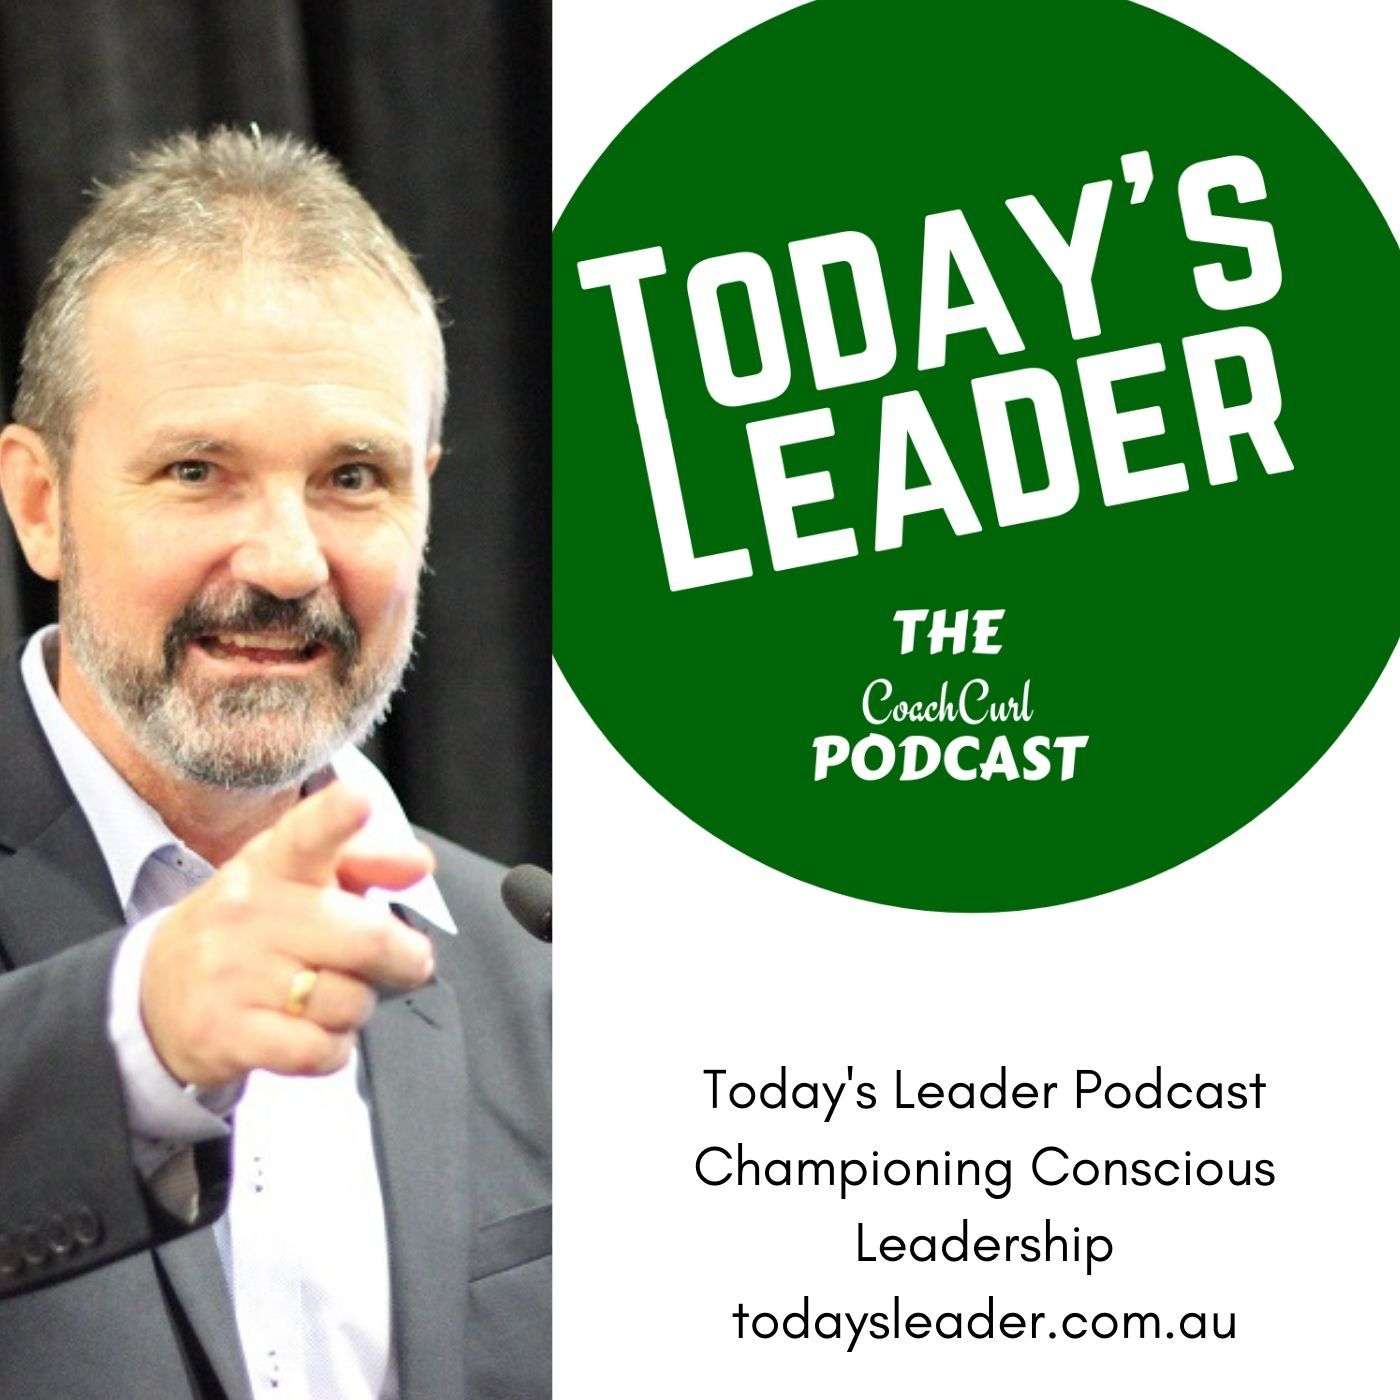 258 Monday Mentoring Two Of The Best Leadership Hacks Think Grow Business